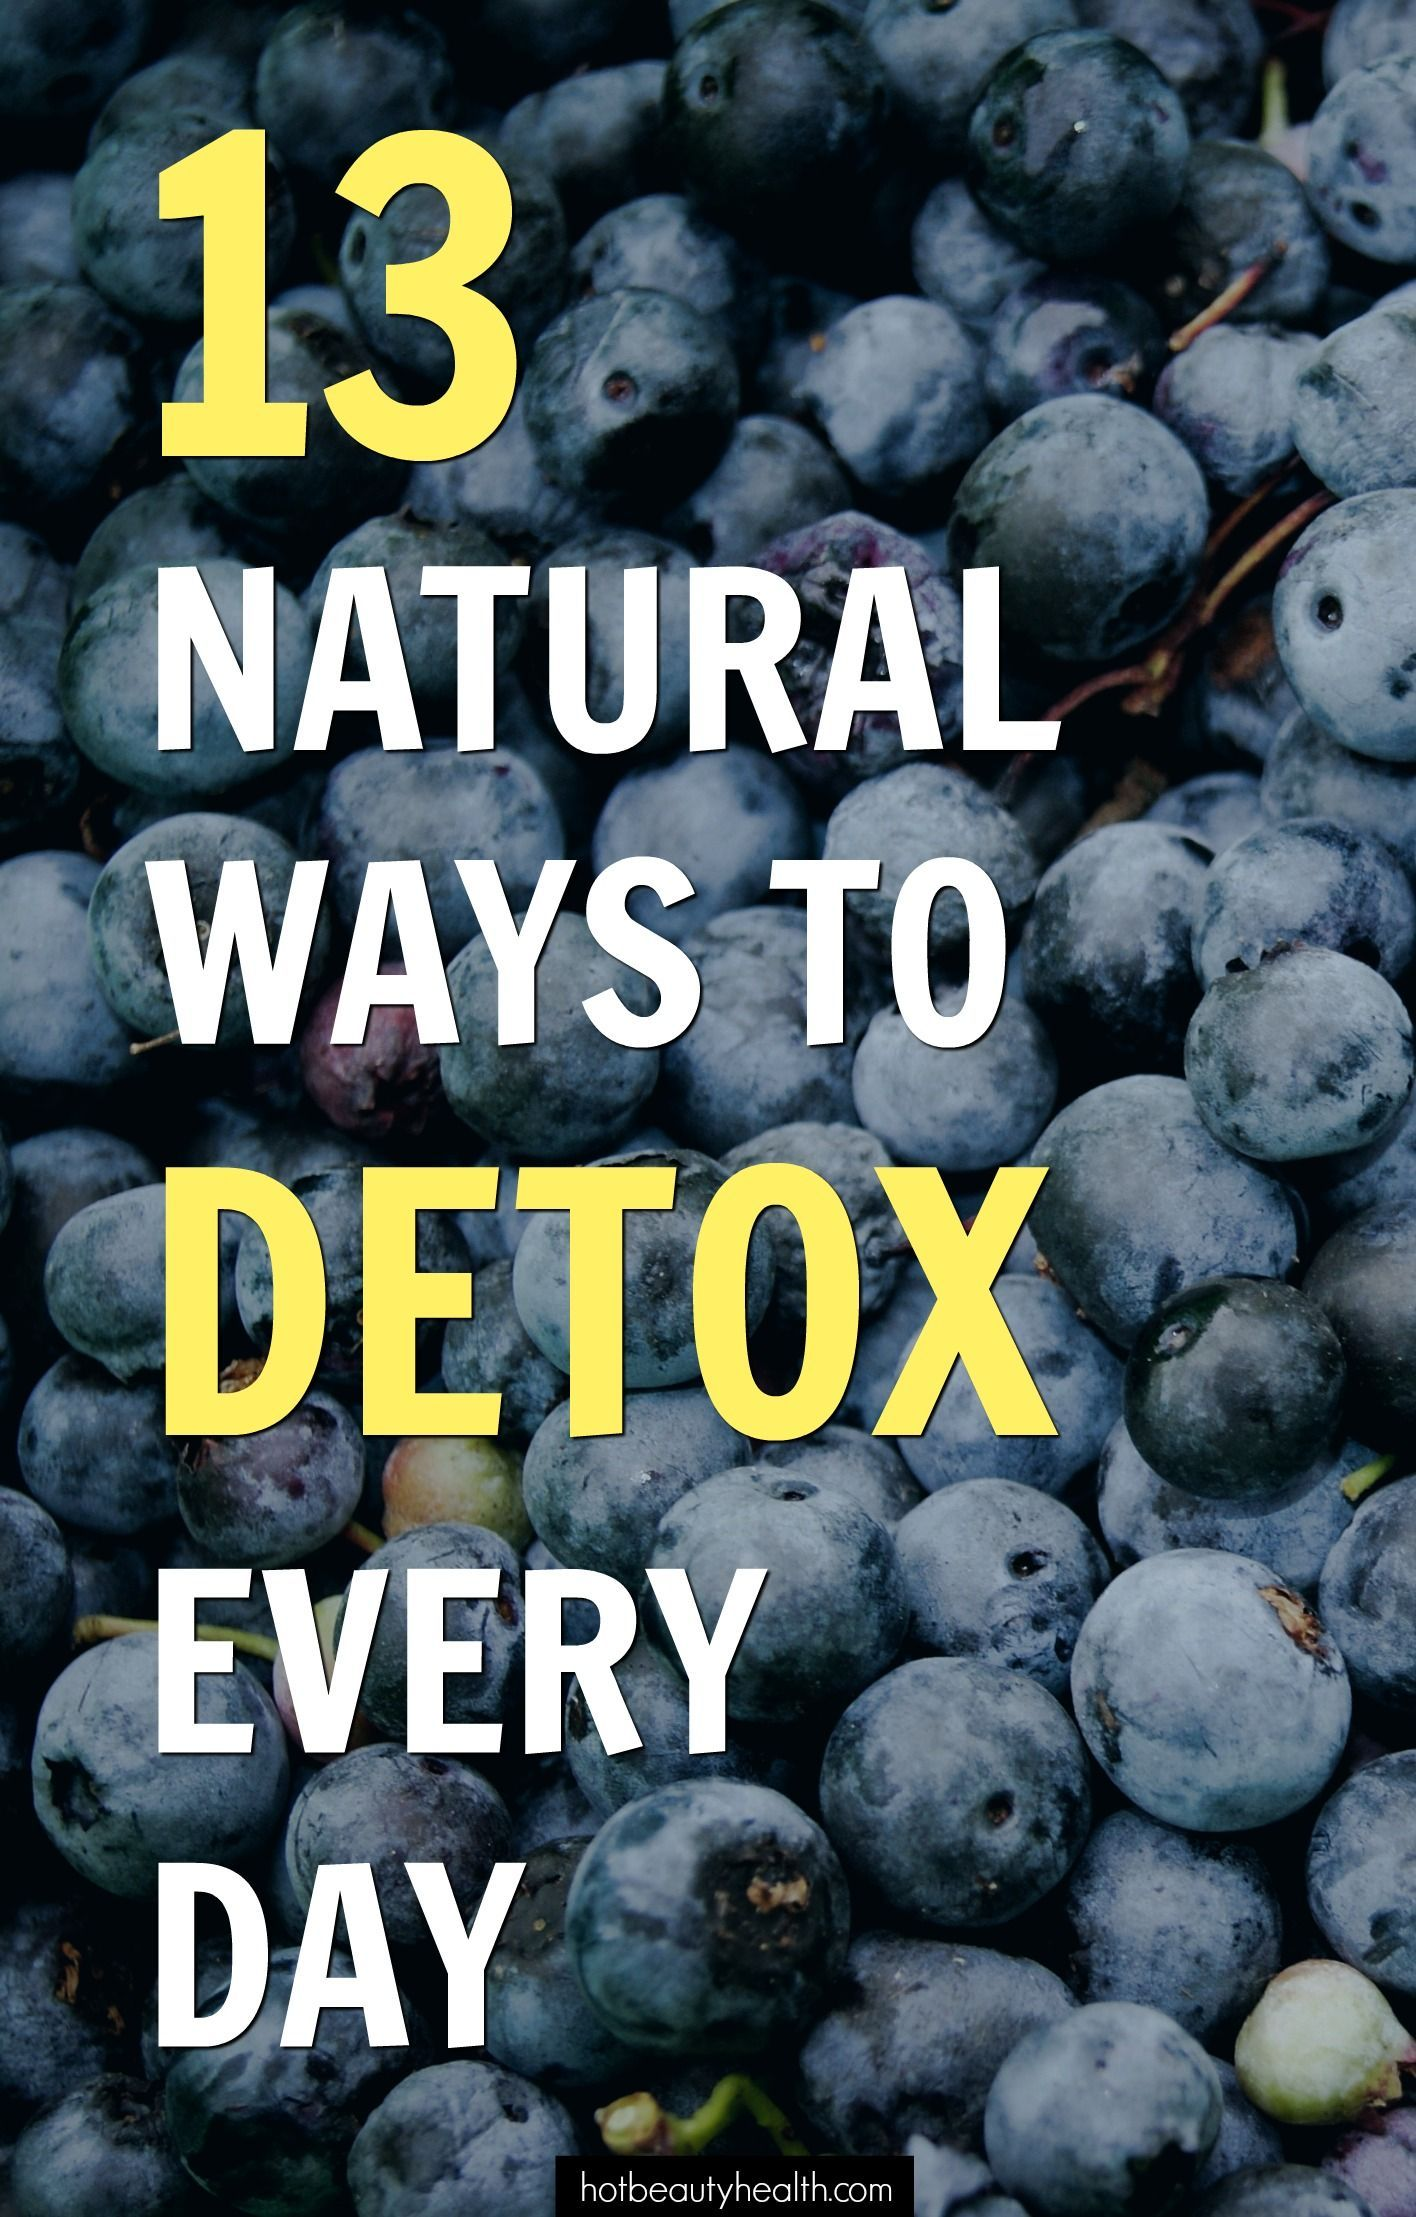 How To Detox: 13 (Easy) Healthy Tips And Tricks You Can Try Today